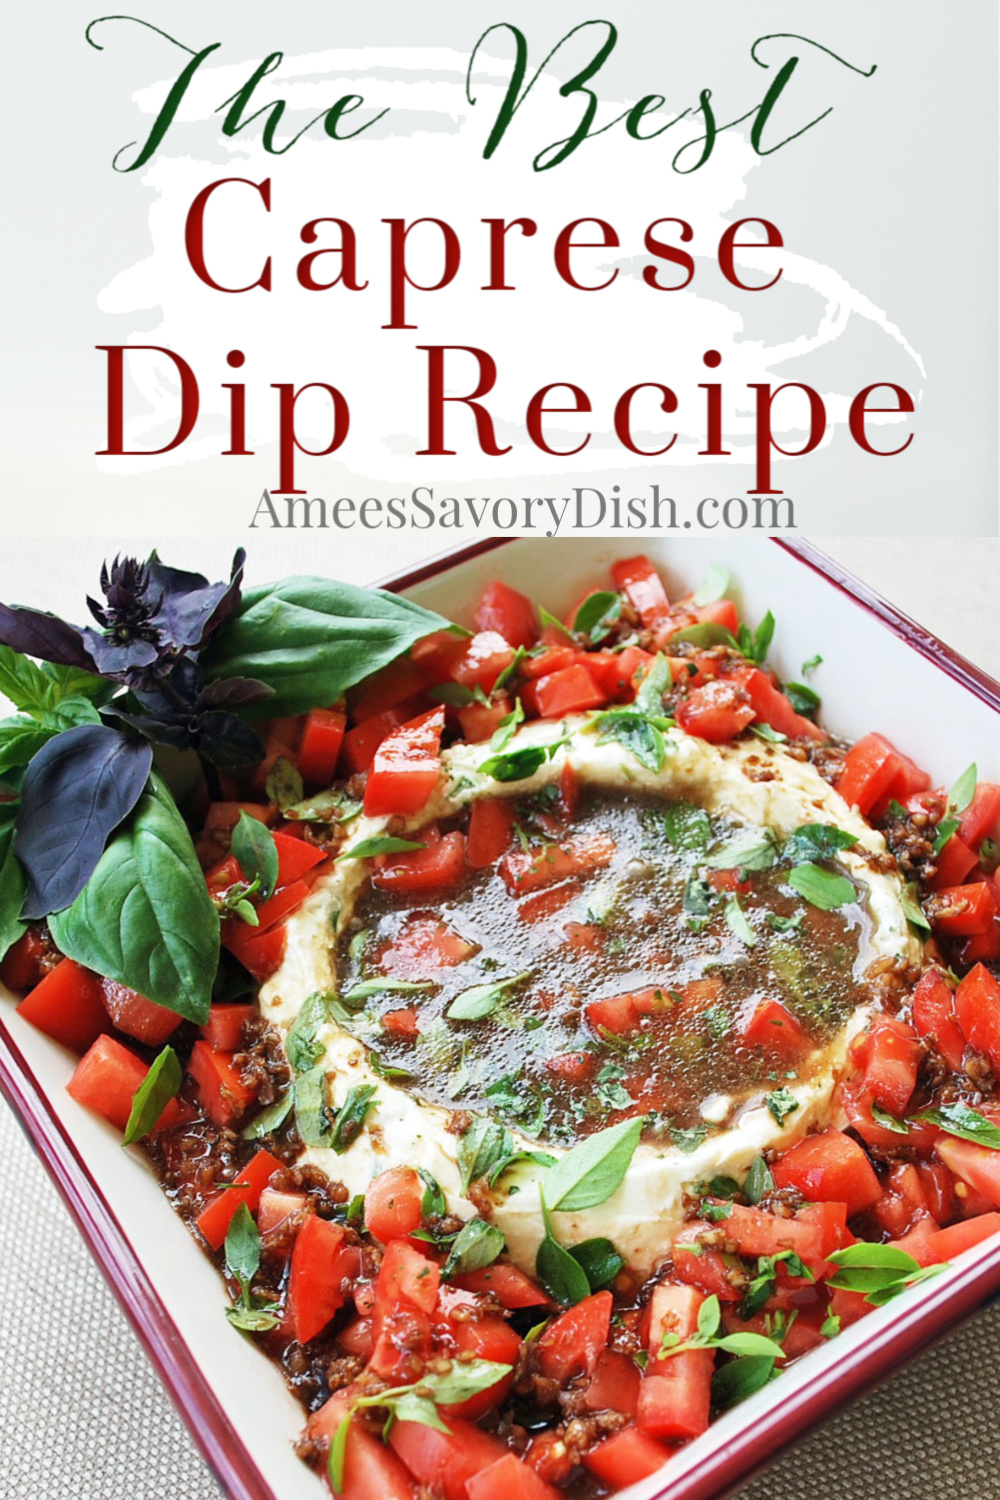 Healthy Caprese dip is so good, you may not save any room for dinner!  Fresh tomatoes and basil, plus two kinds of cheese, drizzled with balsamic vinaigrette. You'll love this healthy dip recipe! #capresedip #caprese #easyappetizers #summerappetizer #capreseappetizer #appetizerrecipe via @Ameecooks